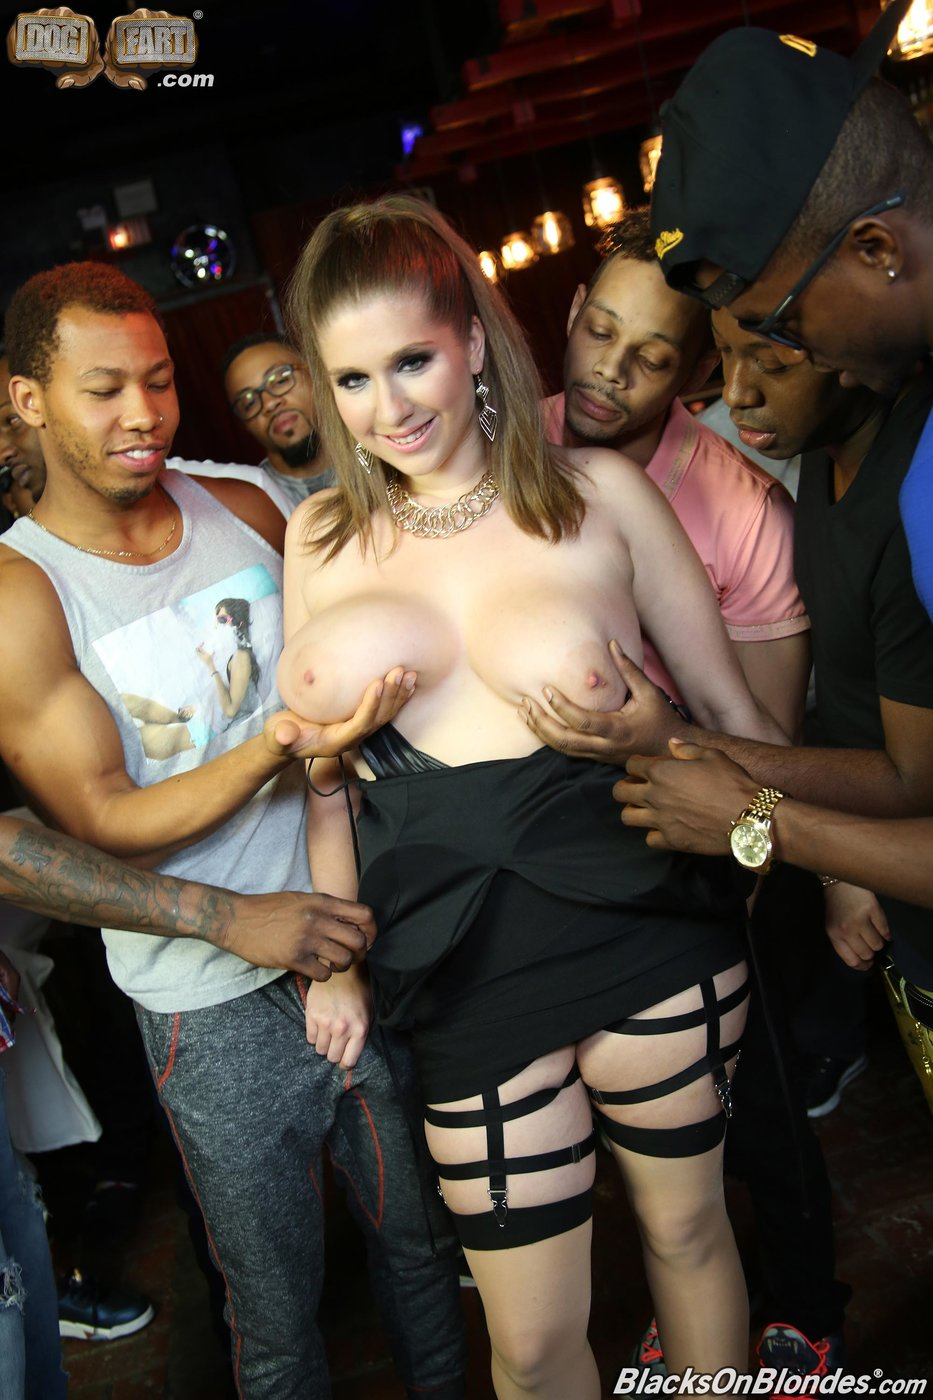 Pale-skinned brunette PAWG gets gang-banged by several black dudes -  IamXXX.com